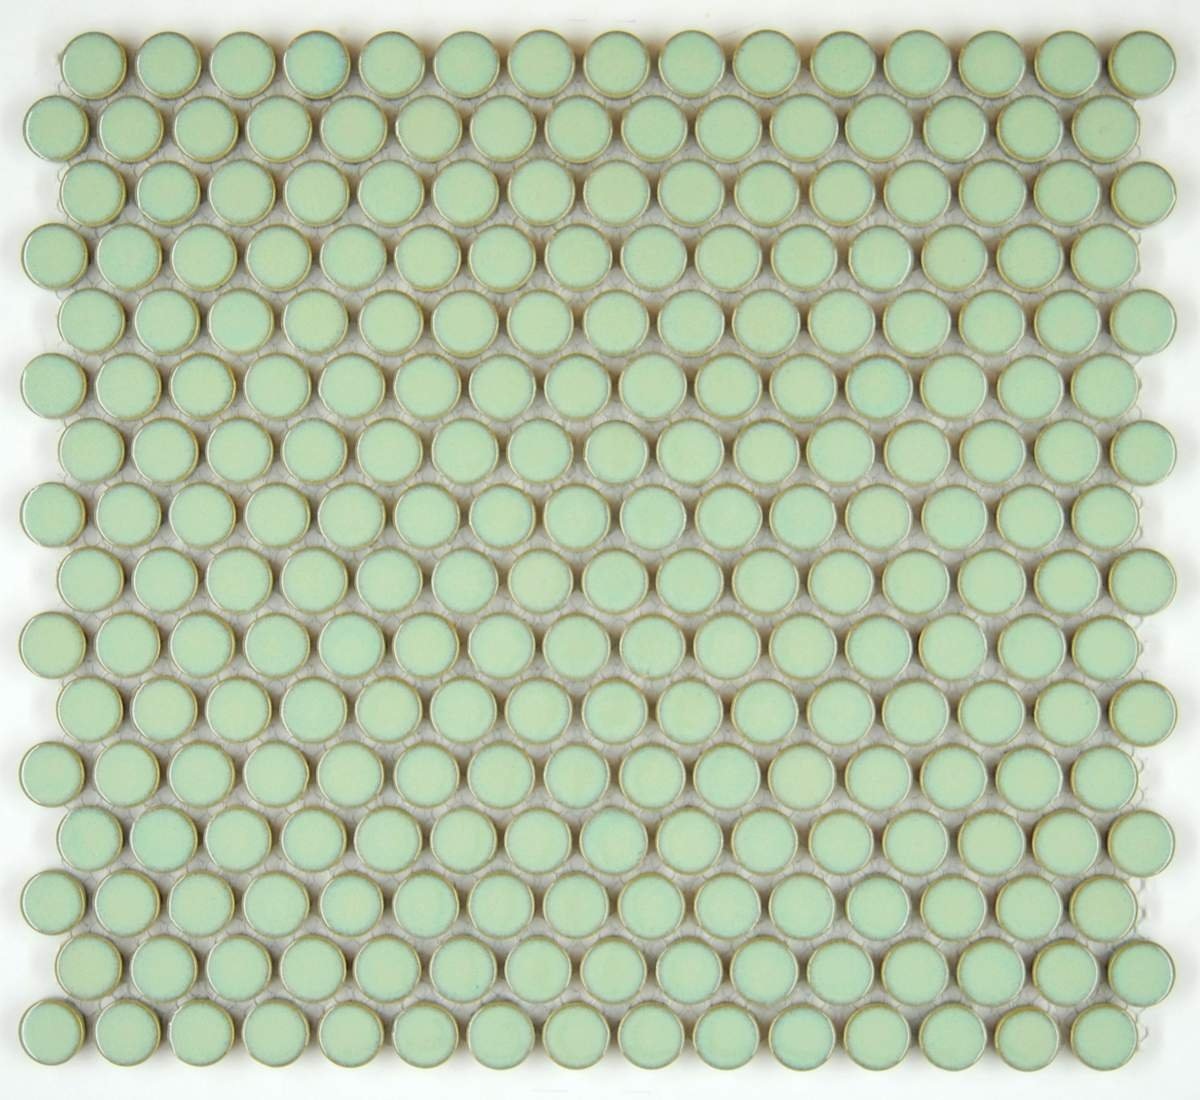 Vogue tile penny round vintage green glossy porcelain mosaic for vogue tile penny round vintage green glossy porcelain mosaic for bathroom floors and walls kitchen backsplashes pool tile amazon dailygadgetfo Gallery